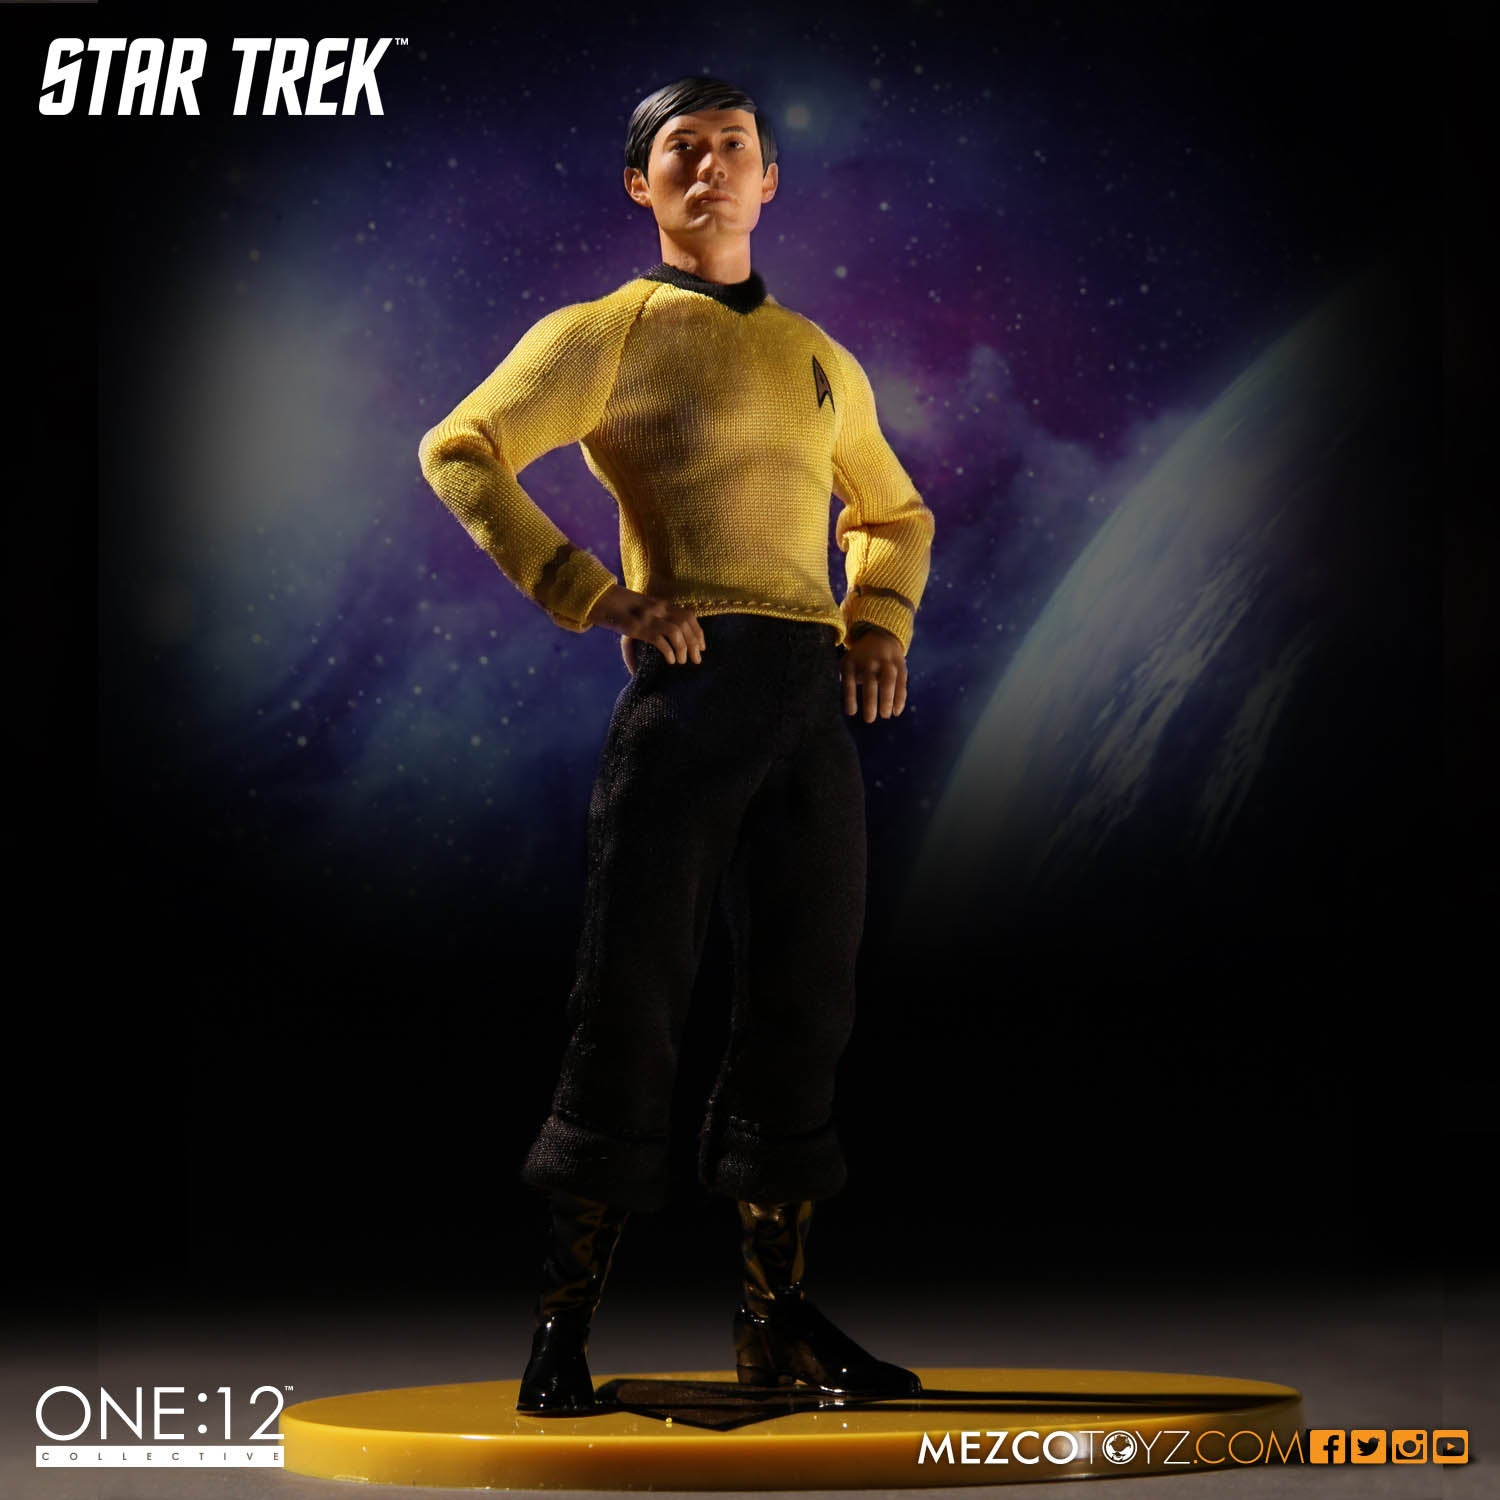 What Happened To Sulu's Face On Mezco's New Star Trek Toy?